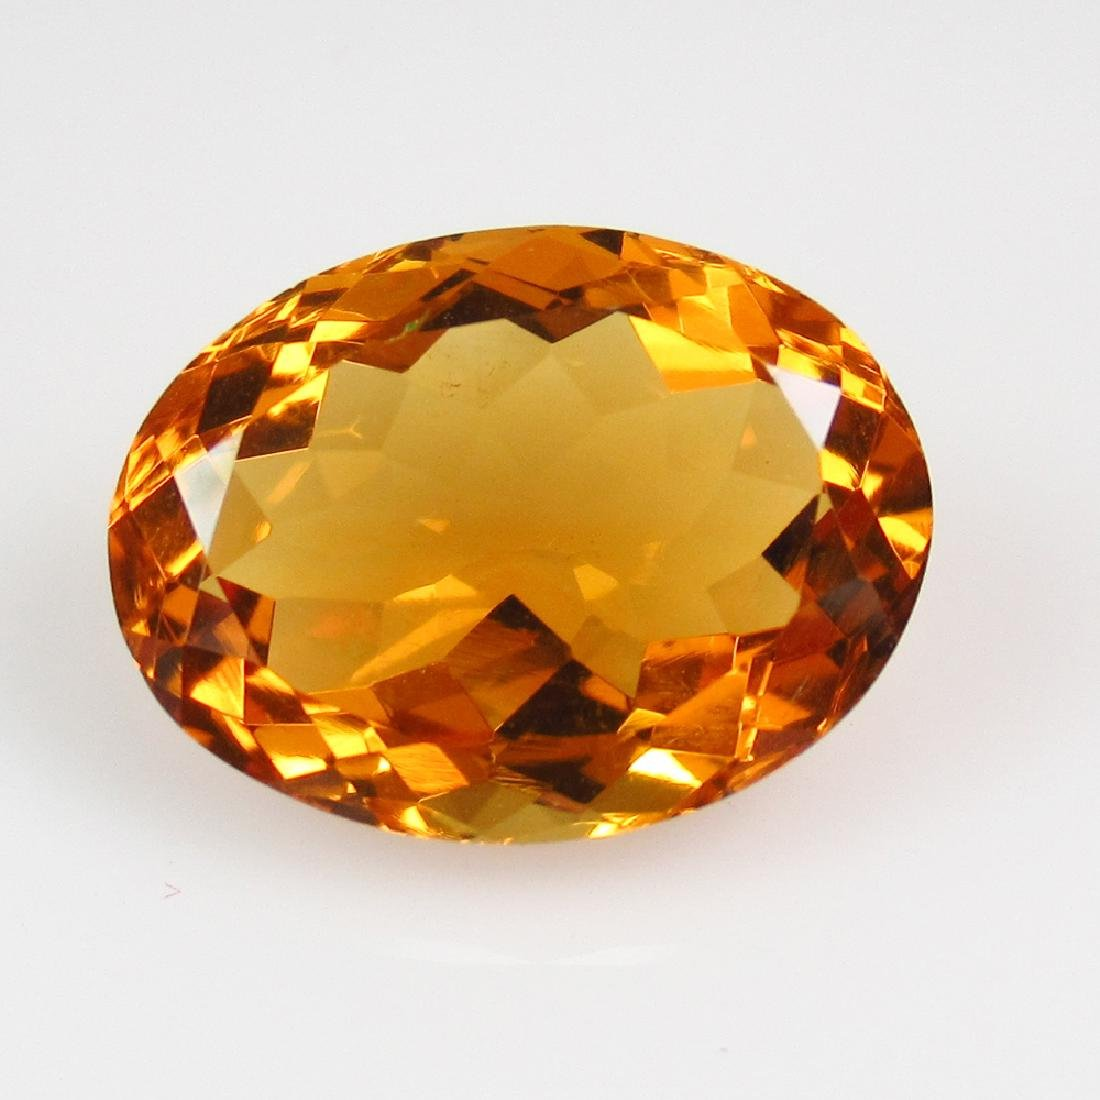 5.77 Ct Genuine Madeira Brandy Yellow Citrine Oval